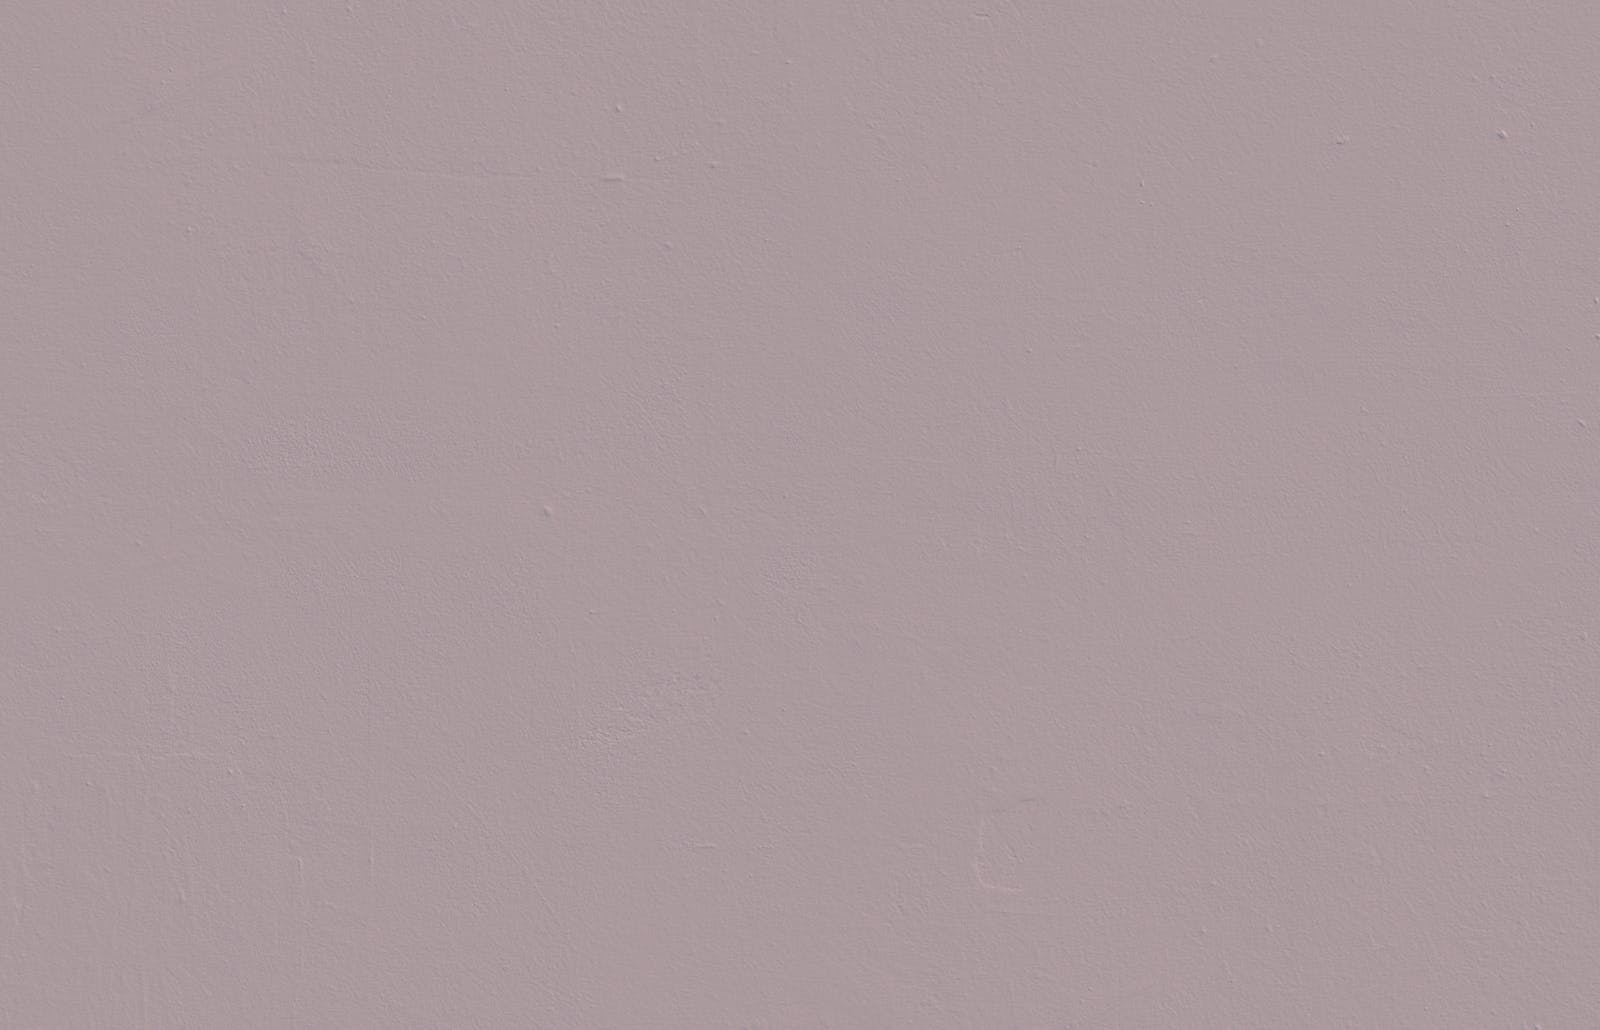 Textured wall painted in Lick Purple 01 paint